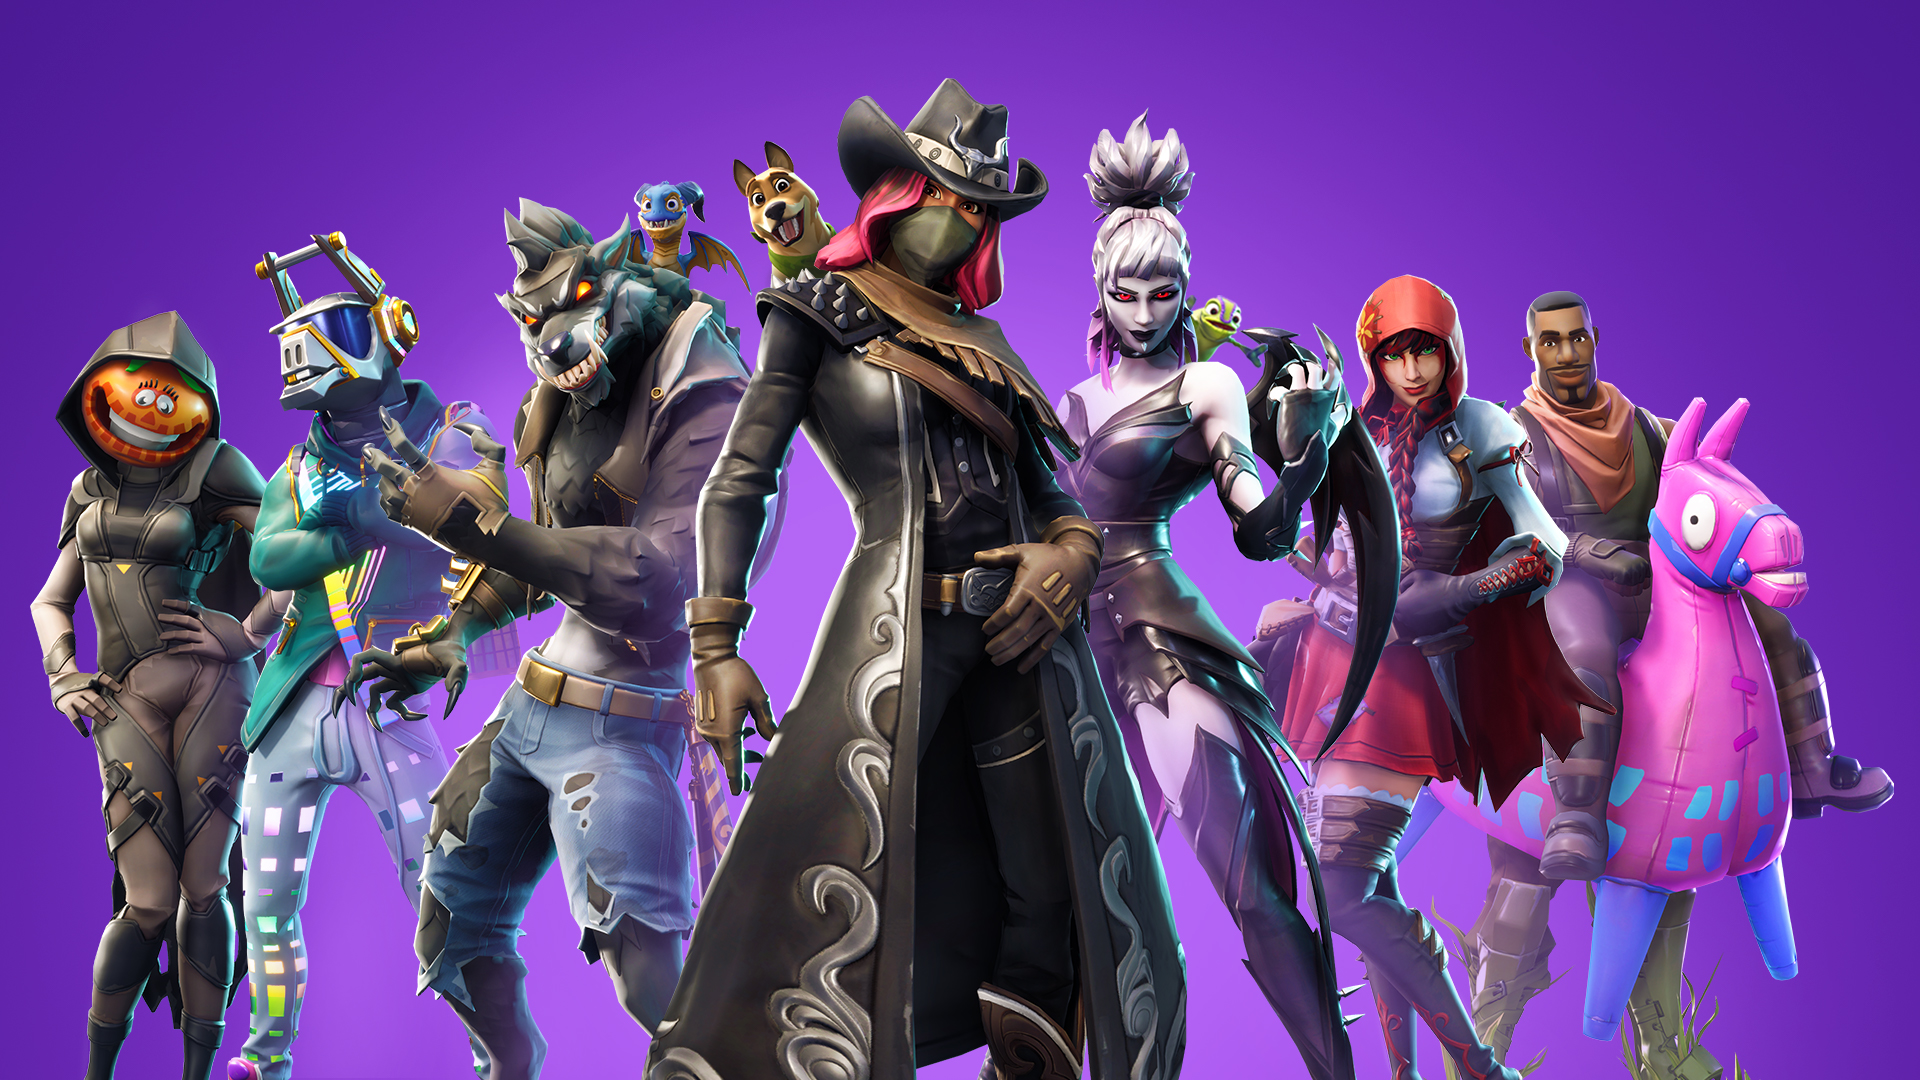 Fortnite Season 6 Teaser, Patch Notes, Battle Pass Skin, Pets And More